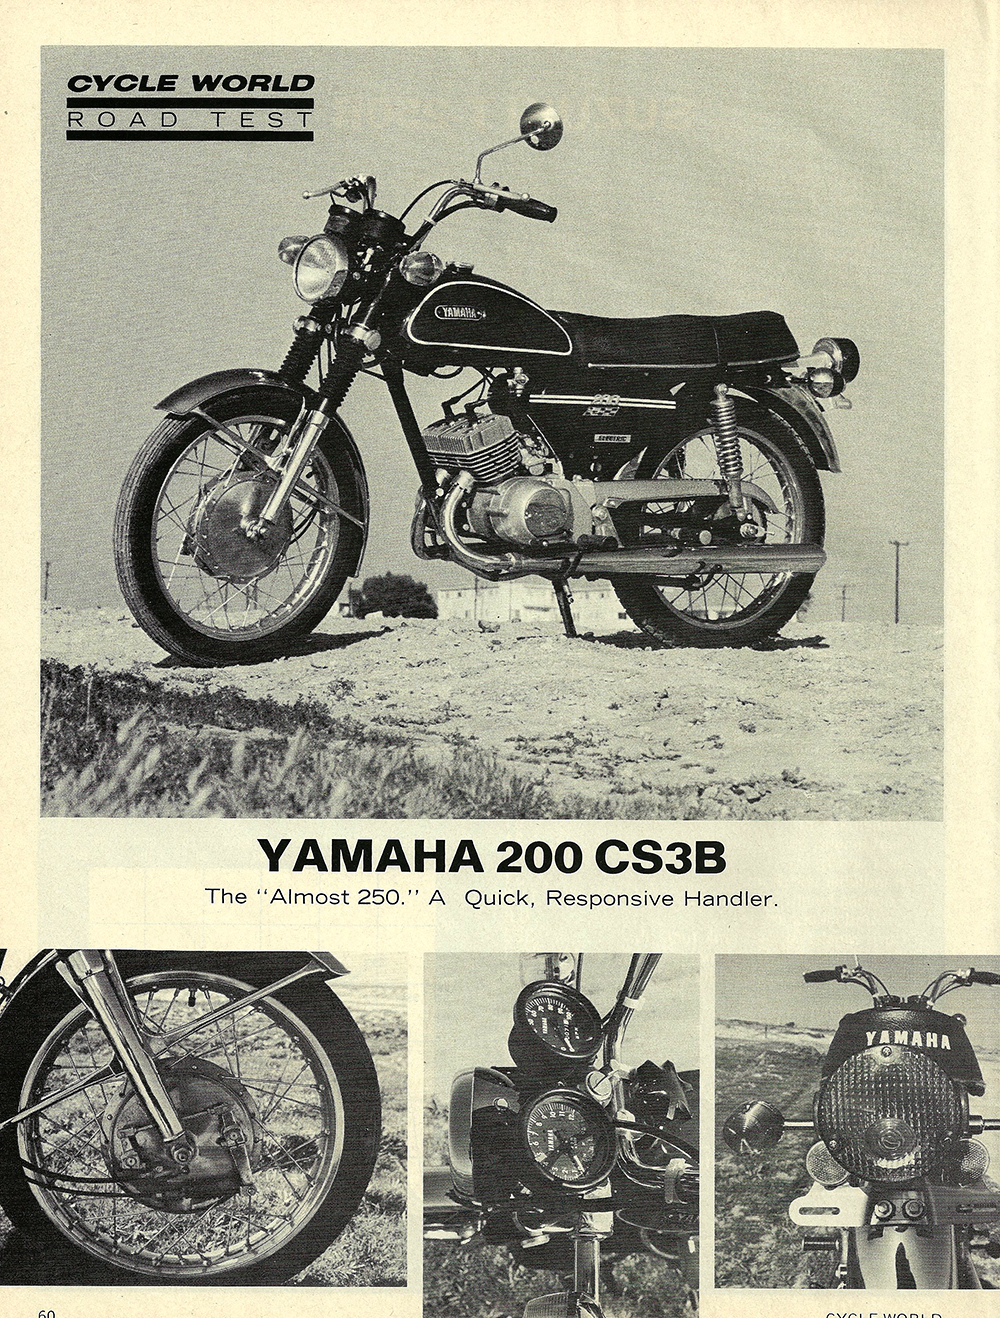 1971 Yamaha 200 CS3B road test 01.jpg